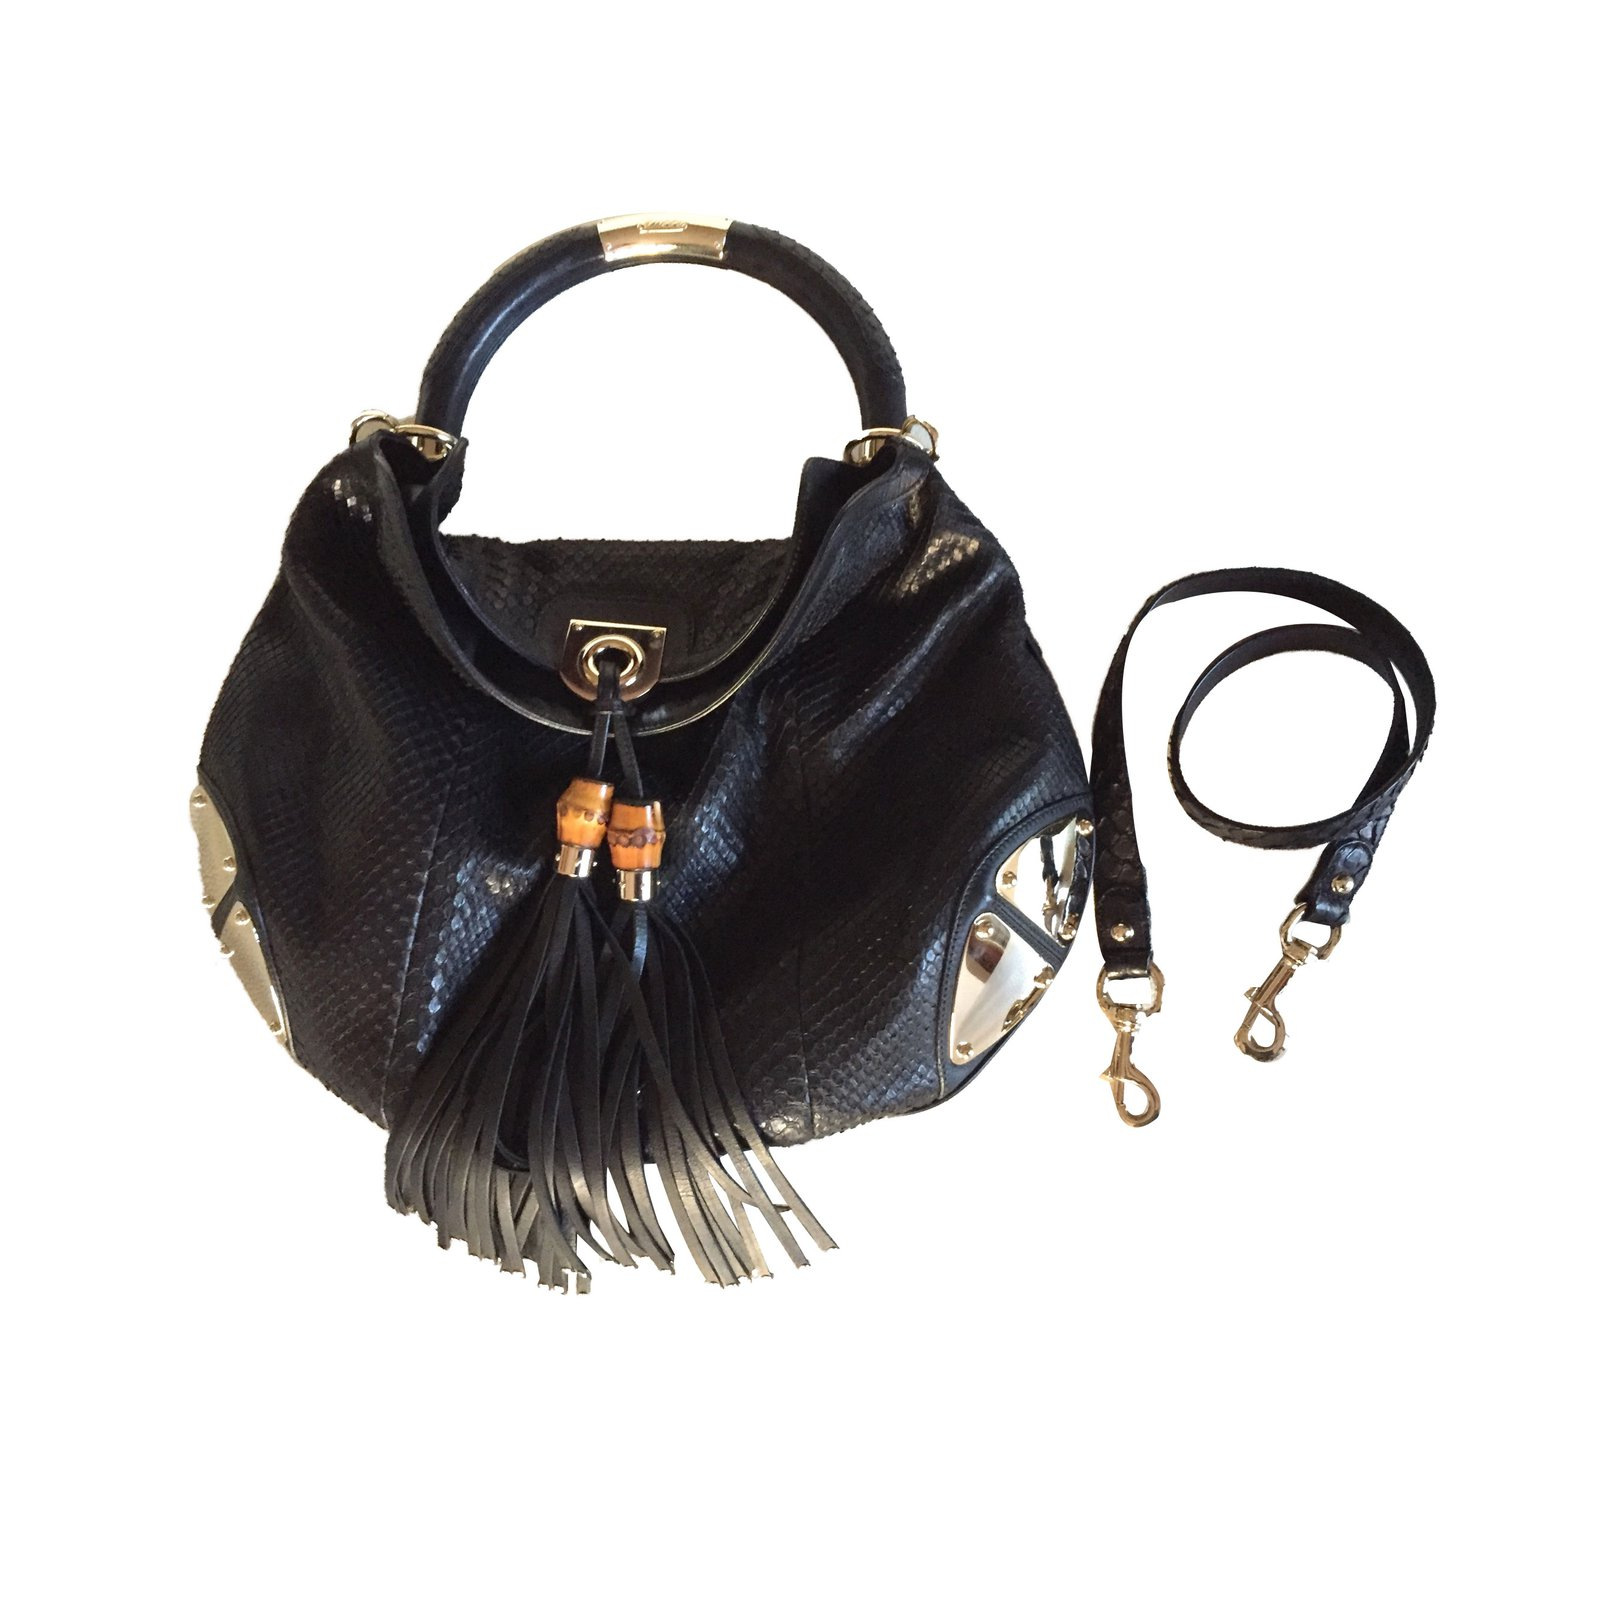 Gucci Indy Handbags Exotic Leather Black Ref 42701